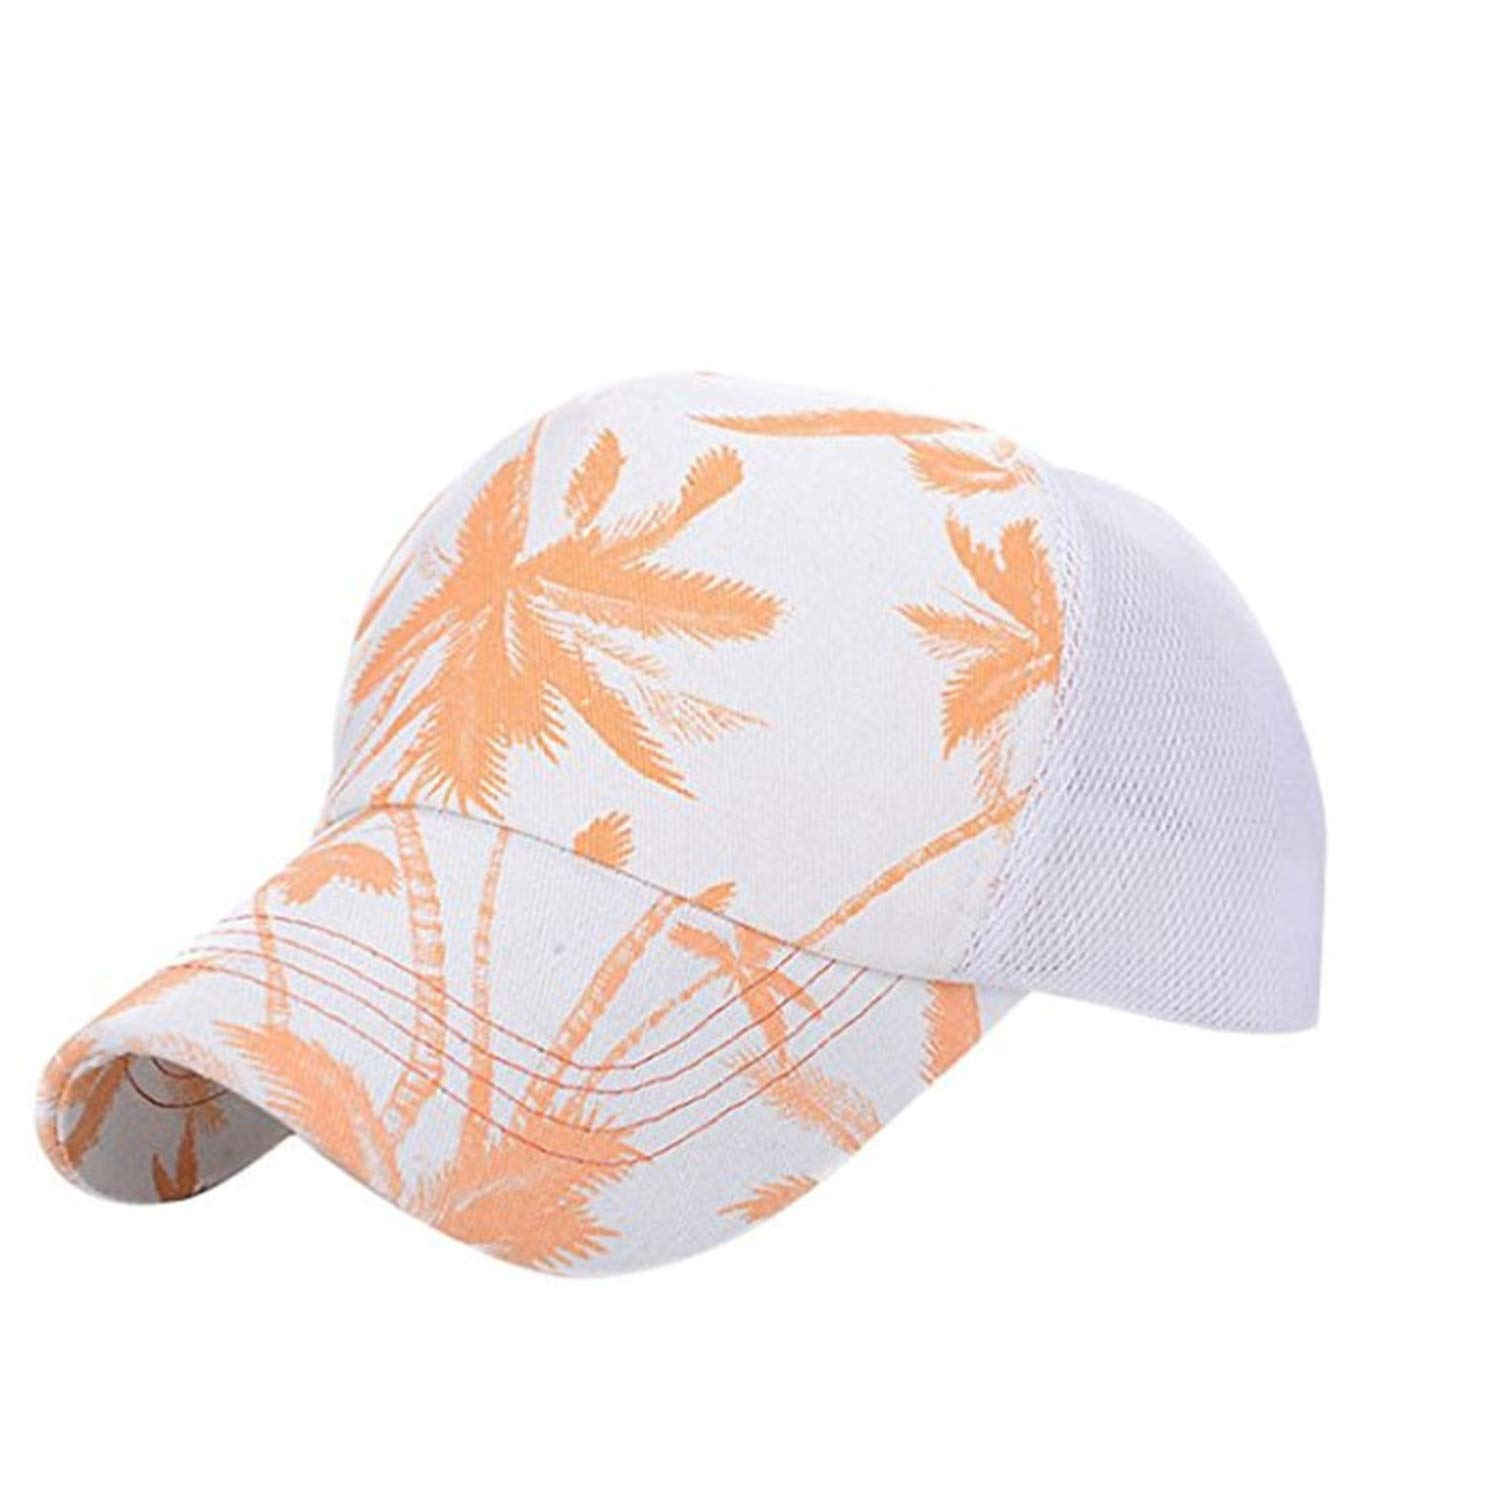 Vogue Baseball Cap for Women Color Print Sunscreen Baseball Cap Girls Cycling Duck Tongue Sun Hat Hip Hop hat